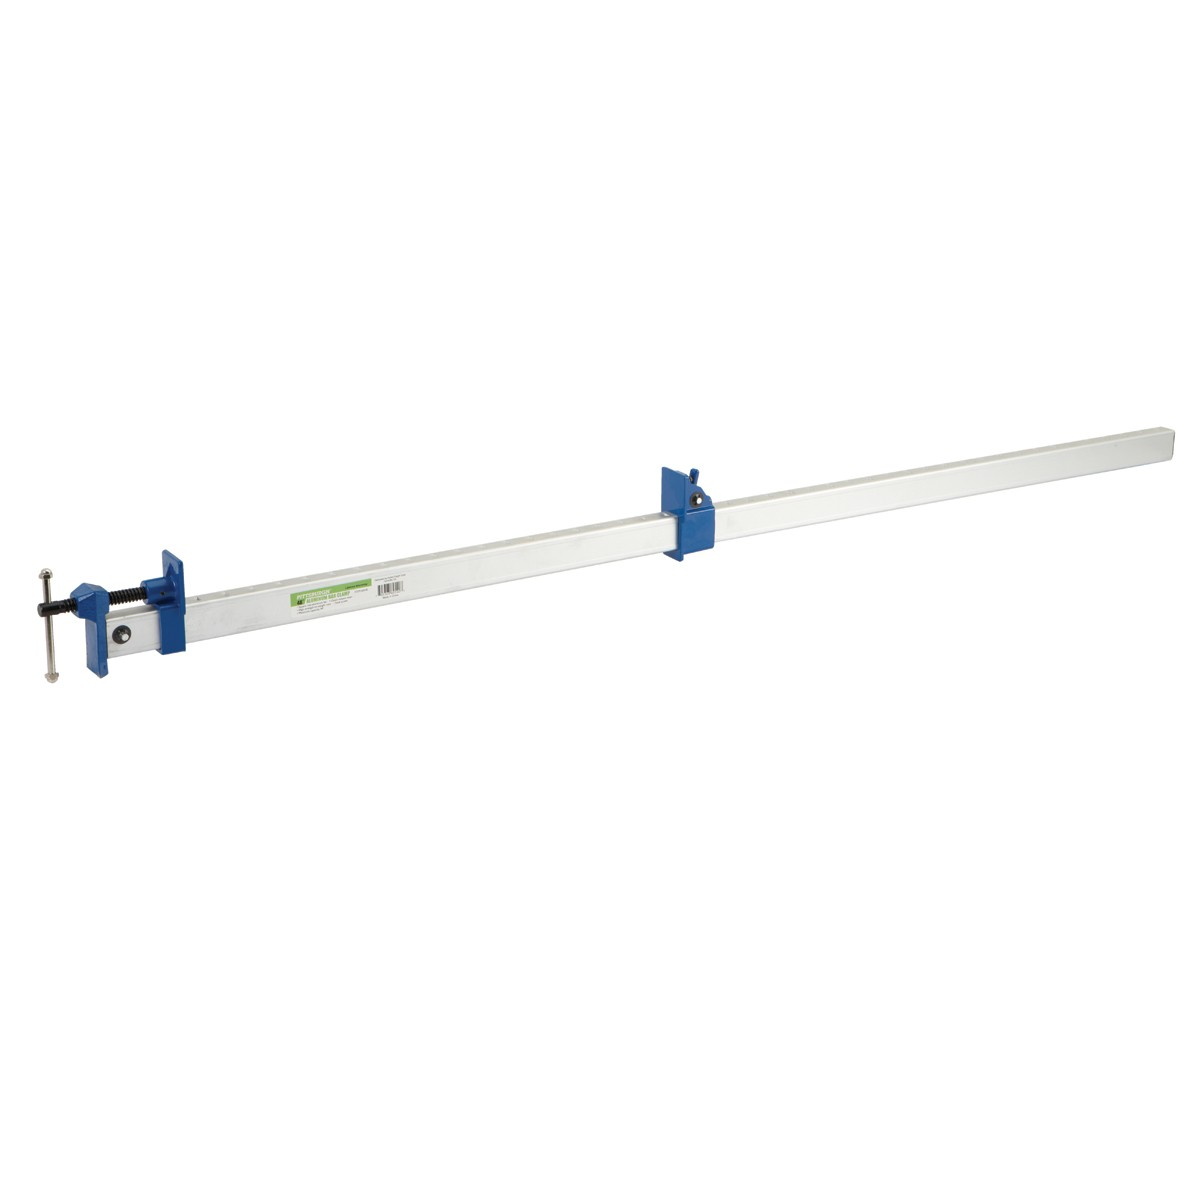 48 in. Aluminum Bar Clamp